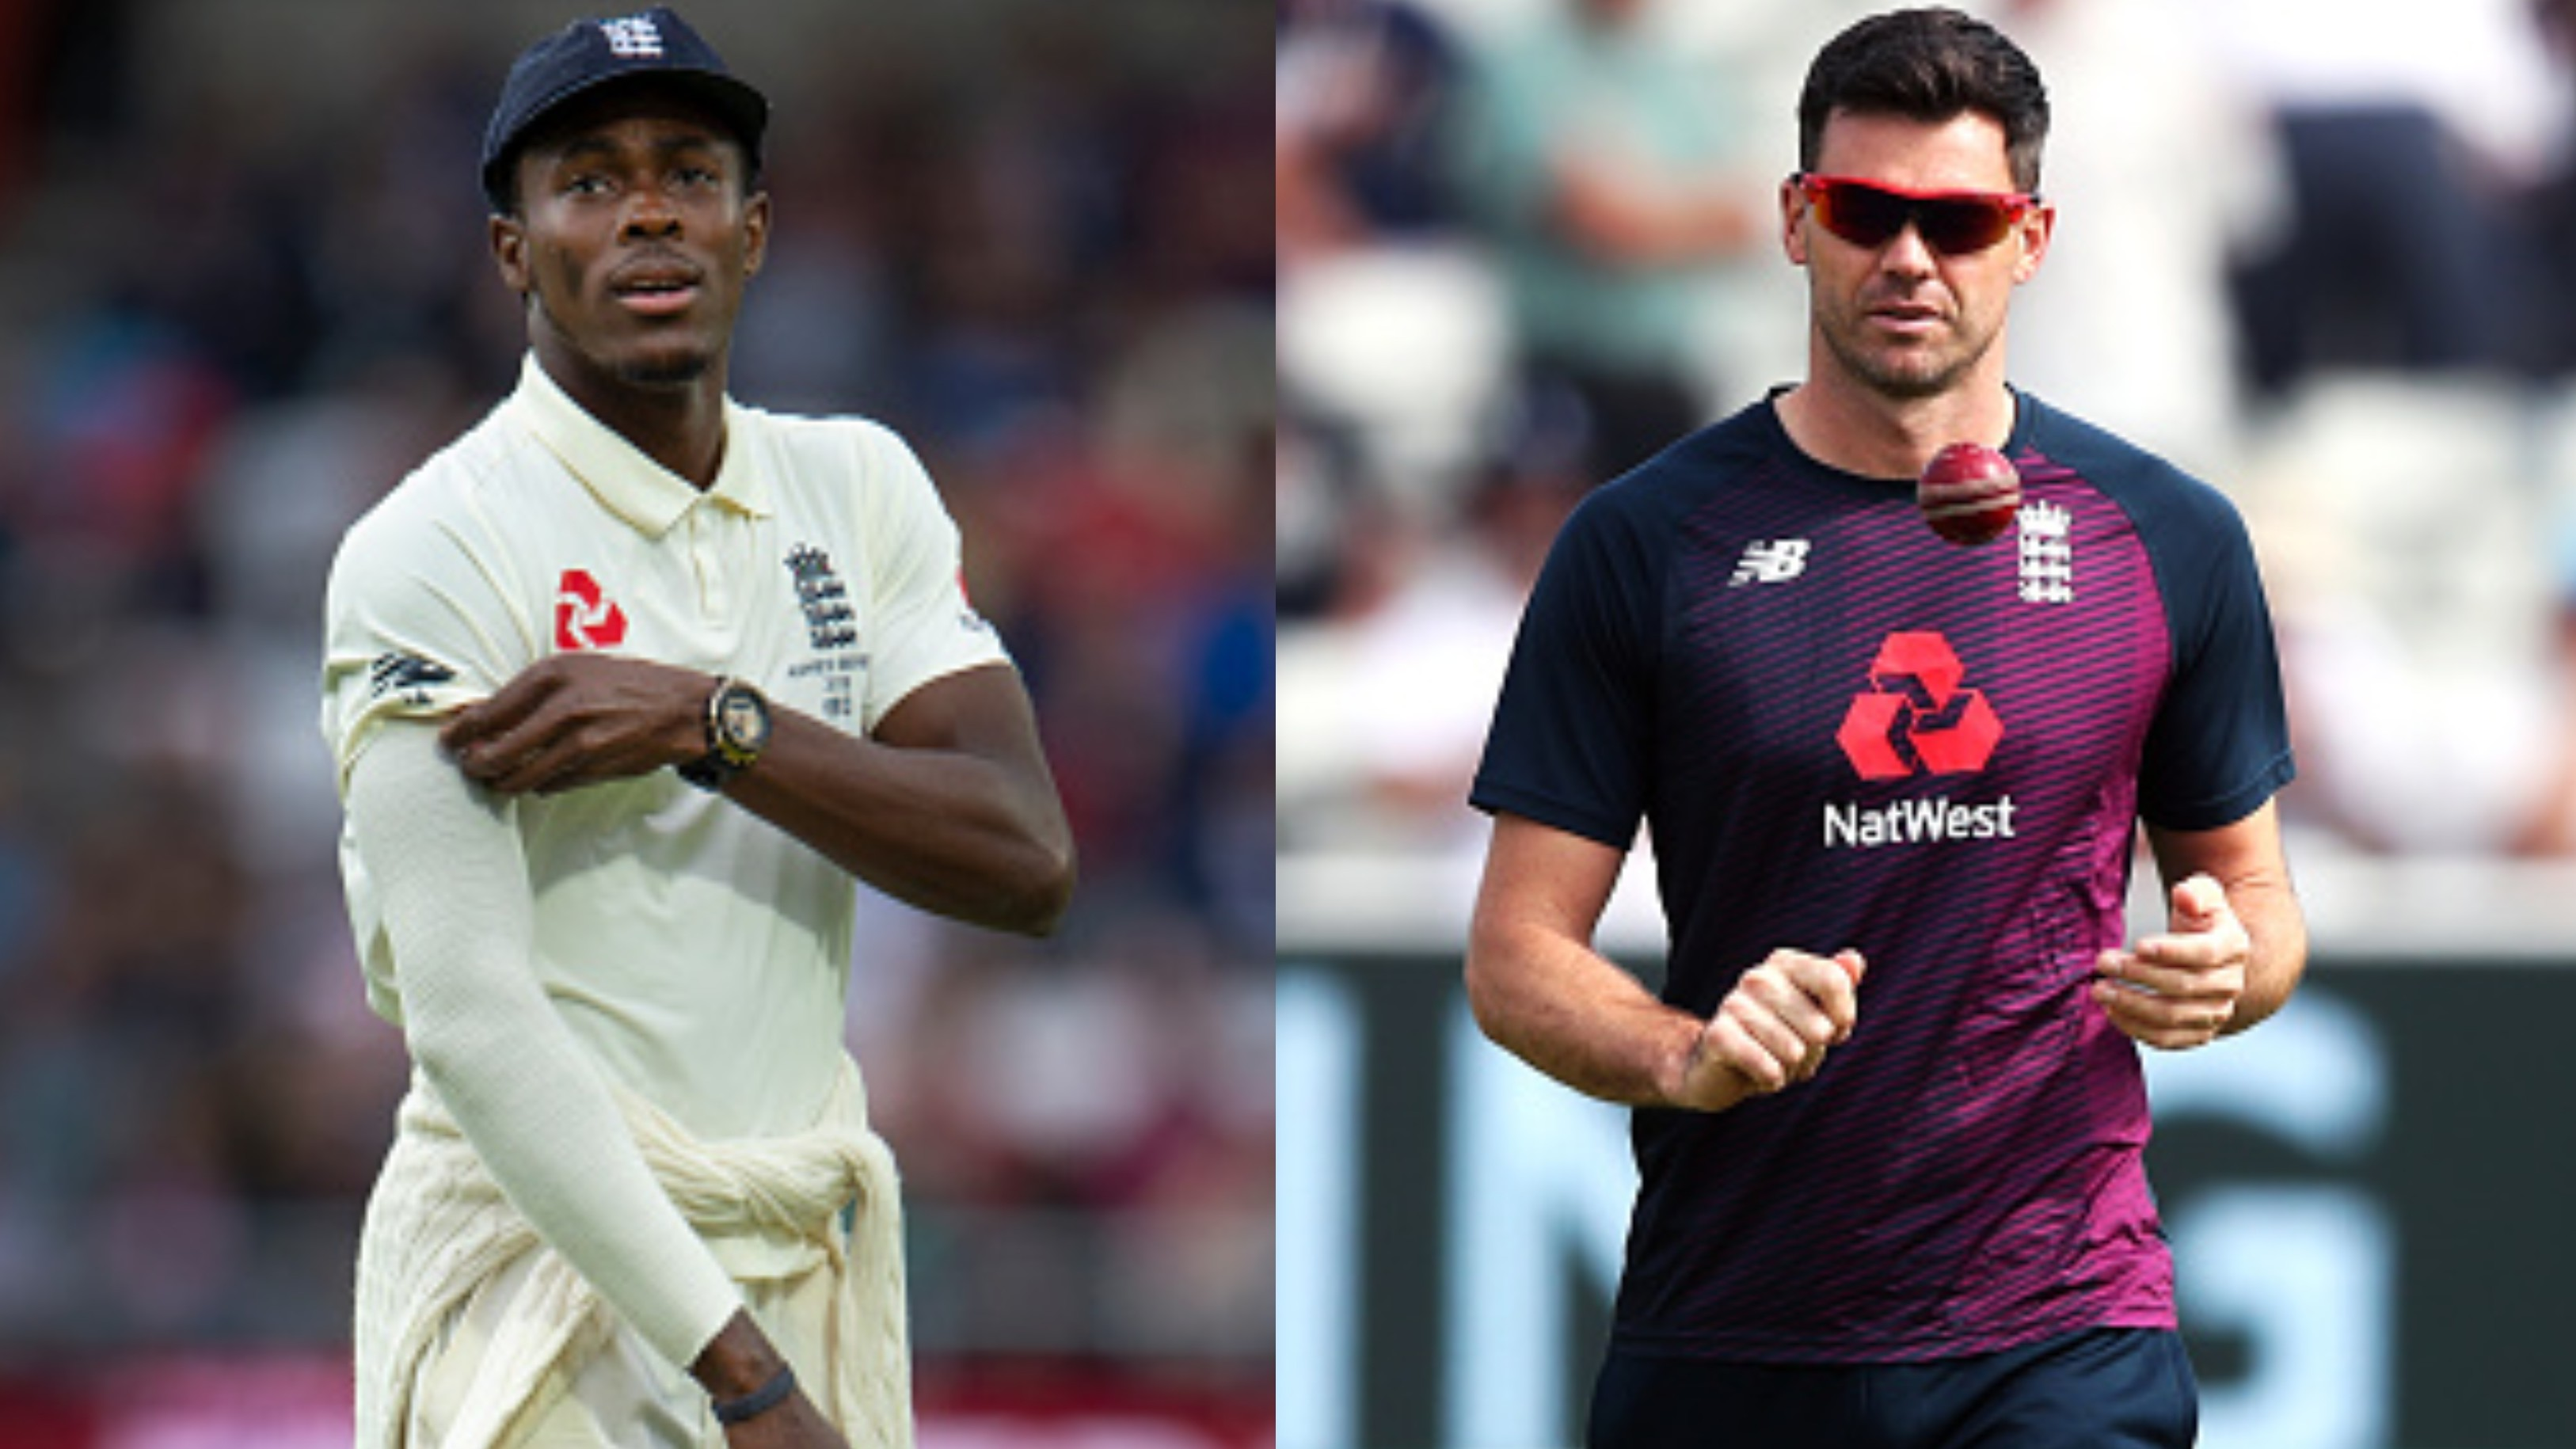 Ashes 2019: James Anderson overwhelmed by Jofra Archer's impact in international cricket